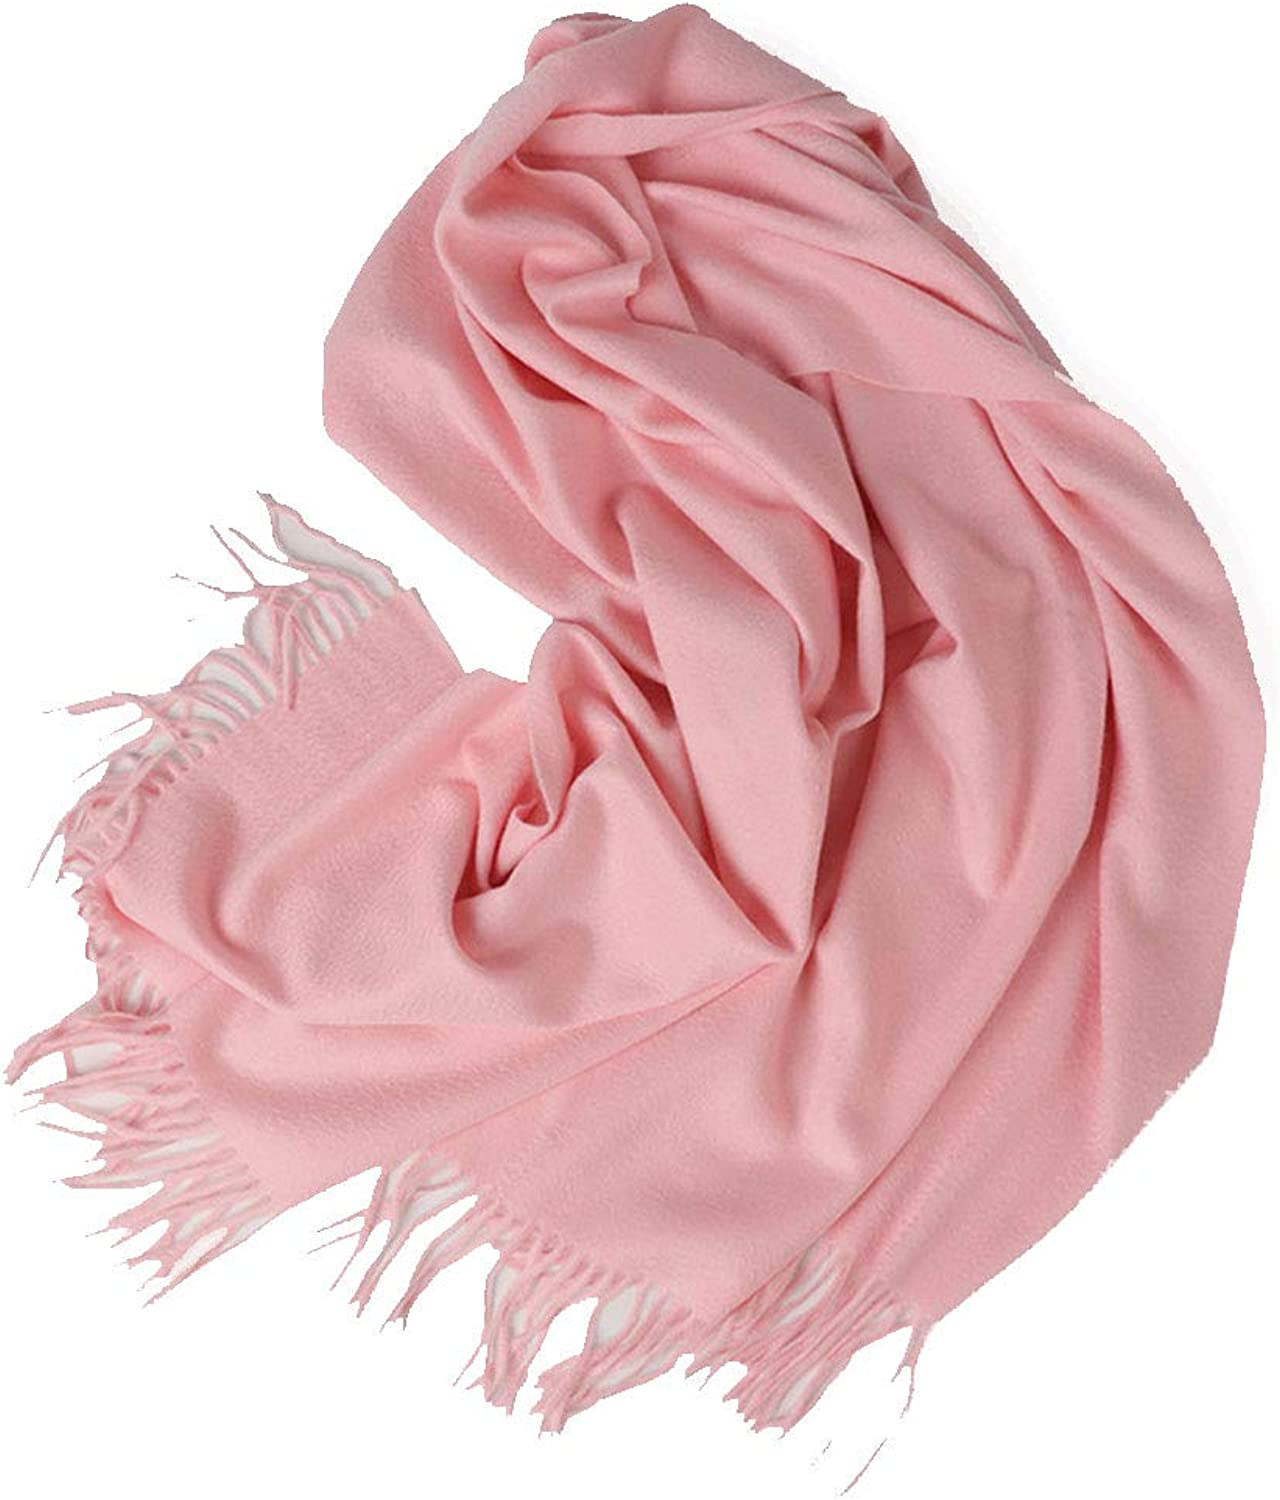 HUIFANG Cashmere Scarf Autumn and Winter Water Ripple Cashmere Scarf Ladies Shawl Tassel Thickening Long Increase Shawl 70  200cm A (color   Pink1, Size   70  200cm)